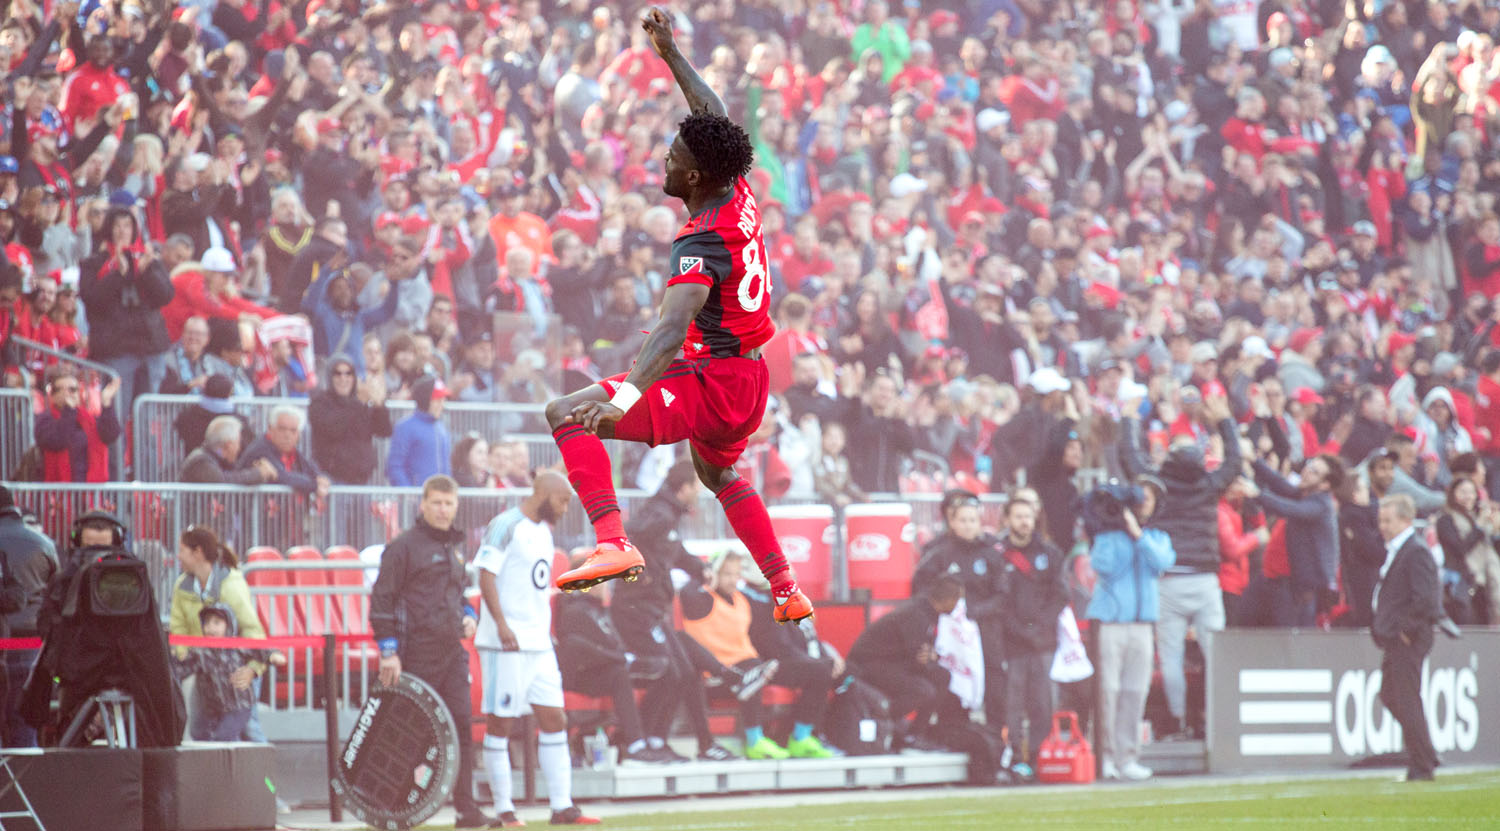 Tosaint Ricketts soaring through the air in celebration after a beautiful header to take Toronto FC to 3 goals and the win over Minnesota United FC.Image by Dennis Marciniak of denMAR Media.